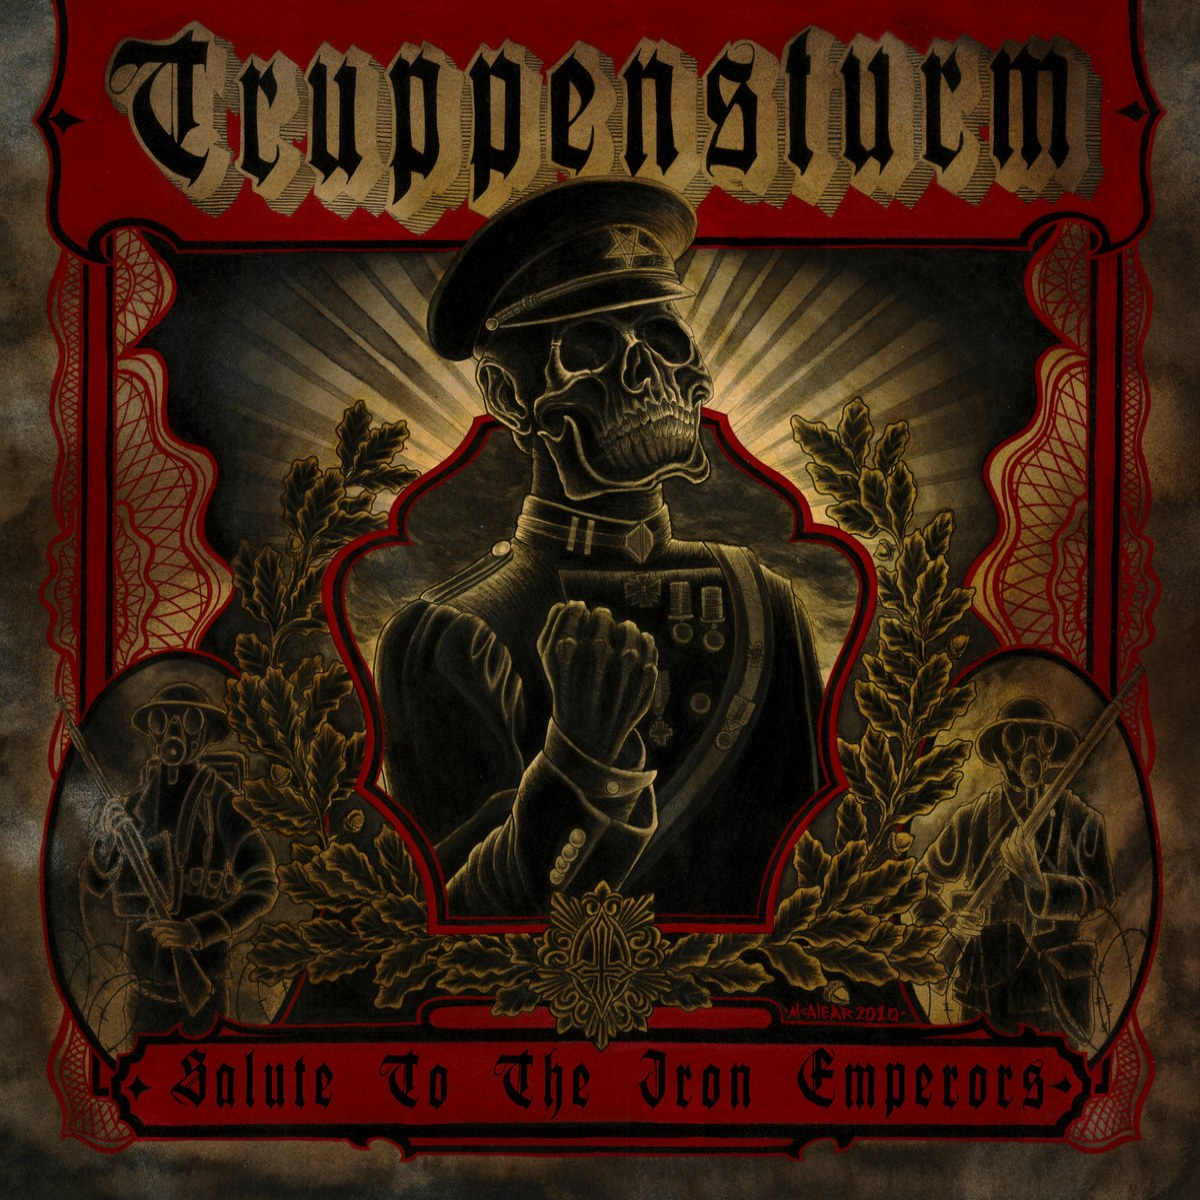 Truppensturm - Salute to the Iron Emperors